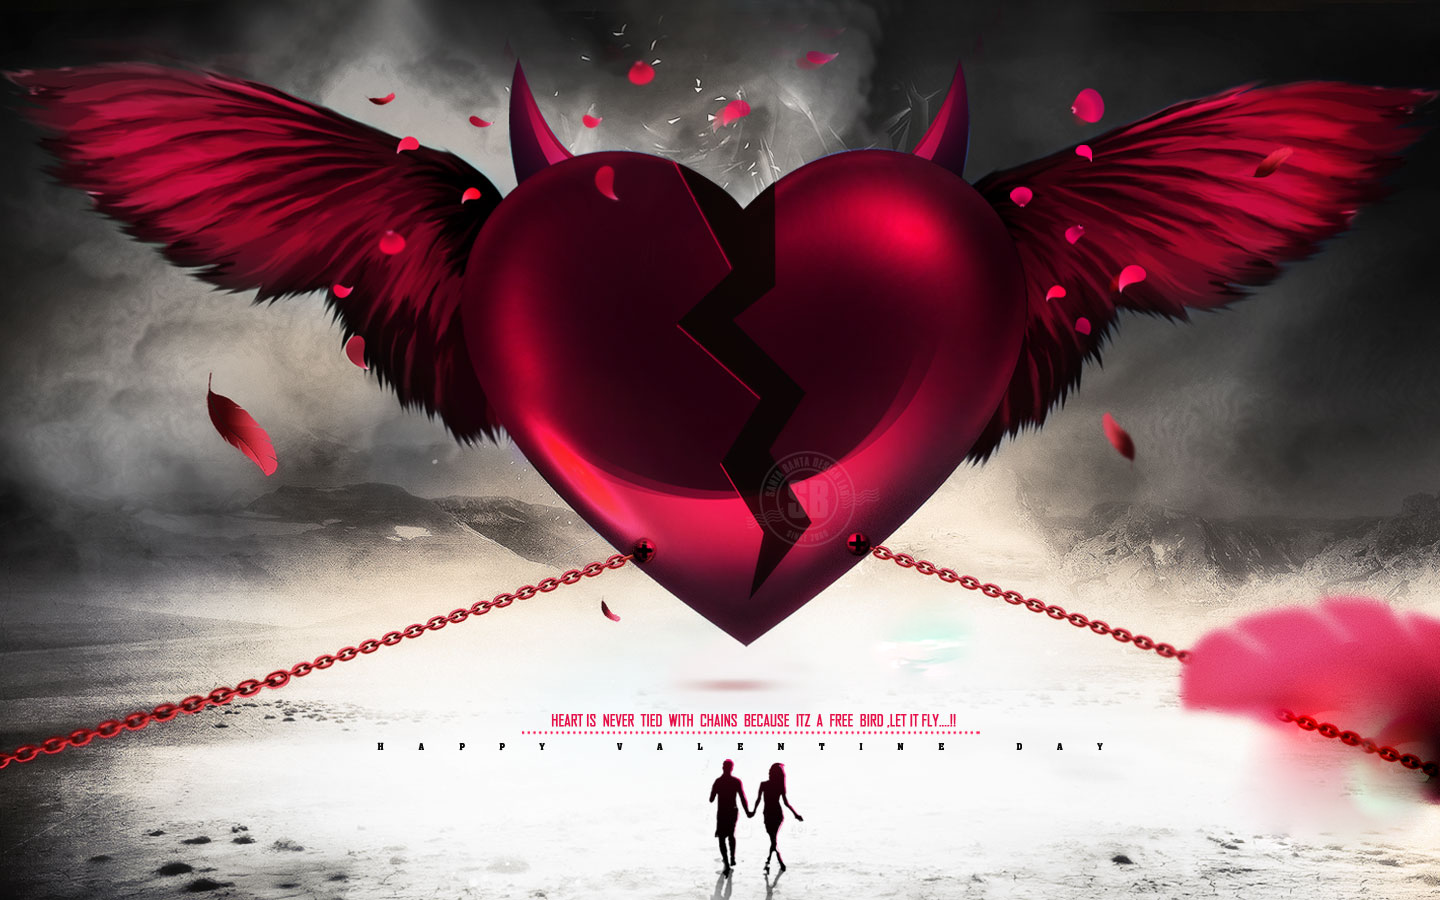 Broken Heart Wallpaper and Background 1440x900 ID696601 1440x900